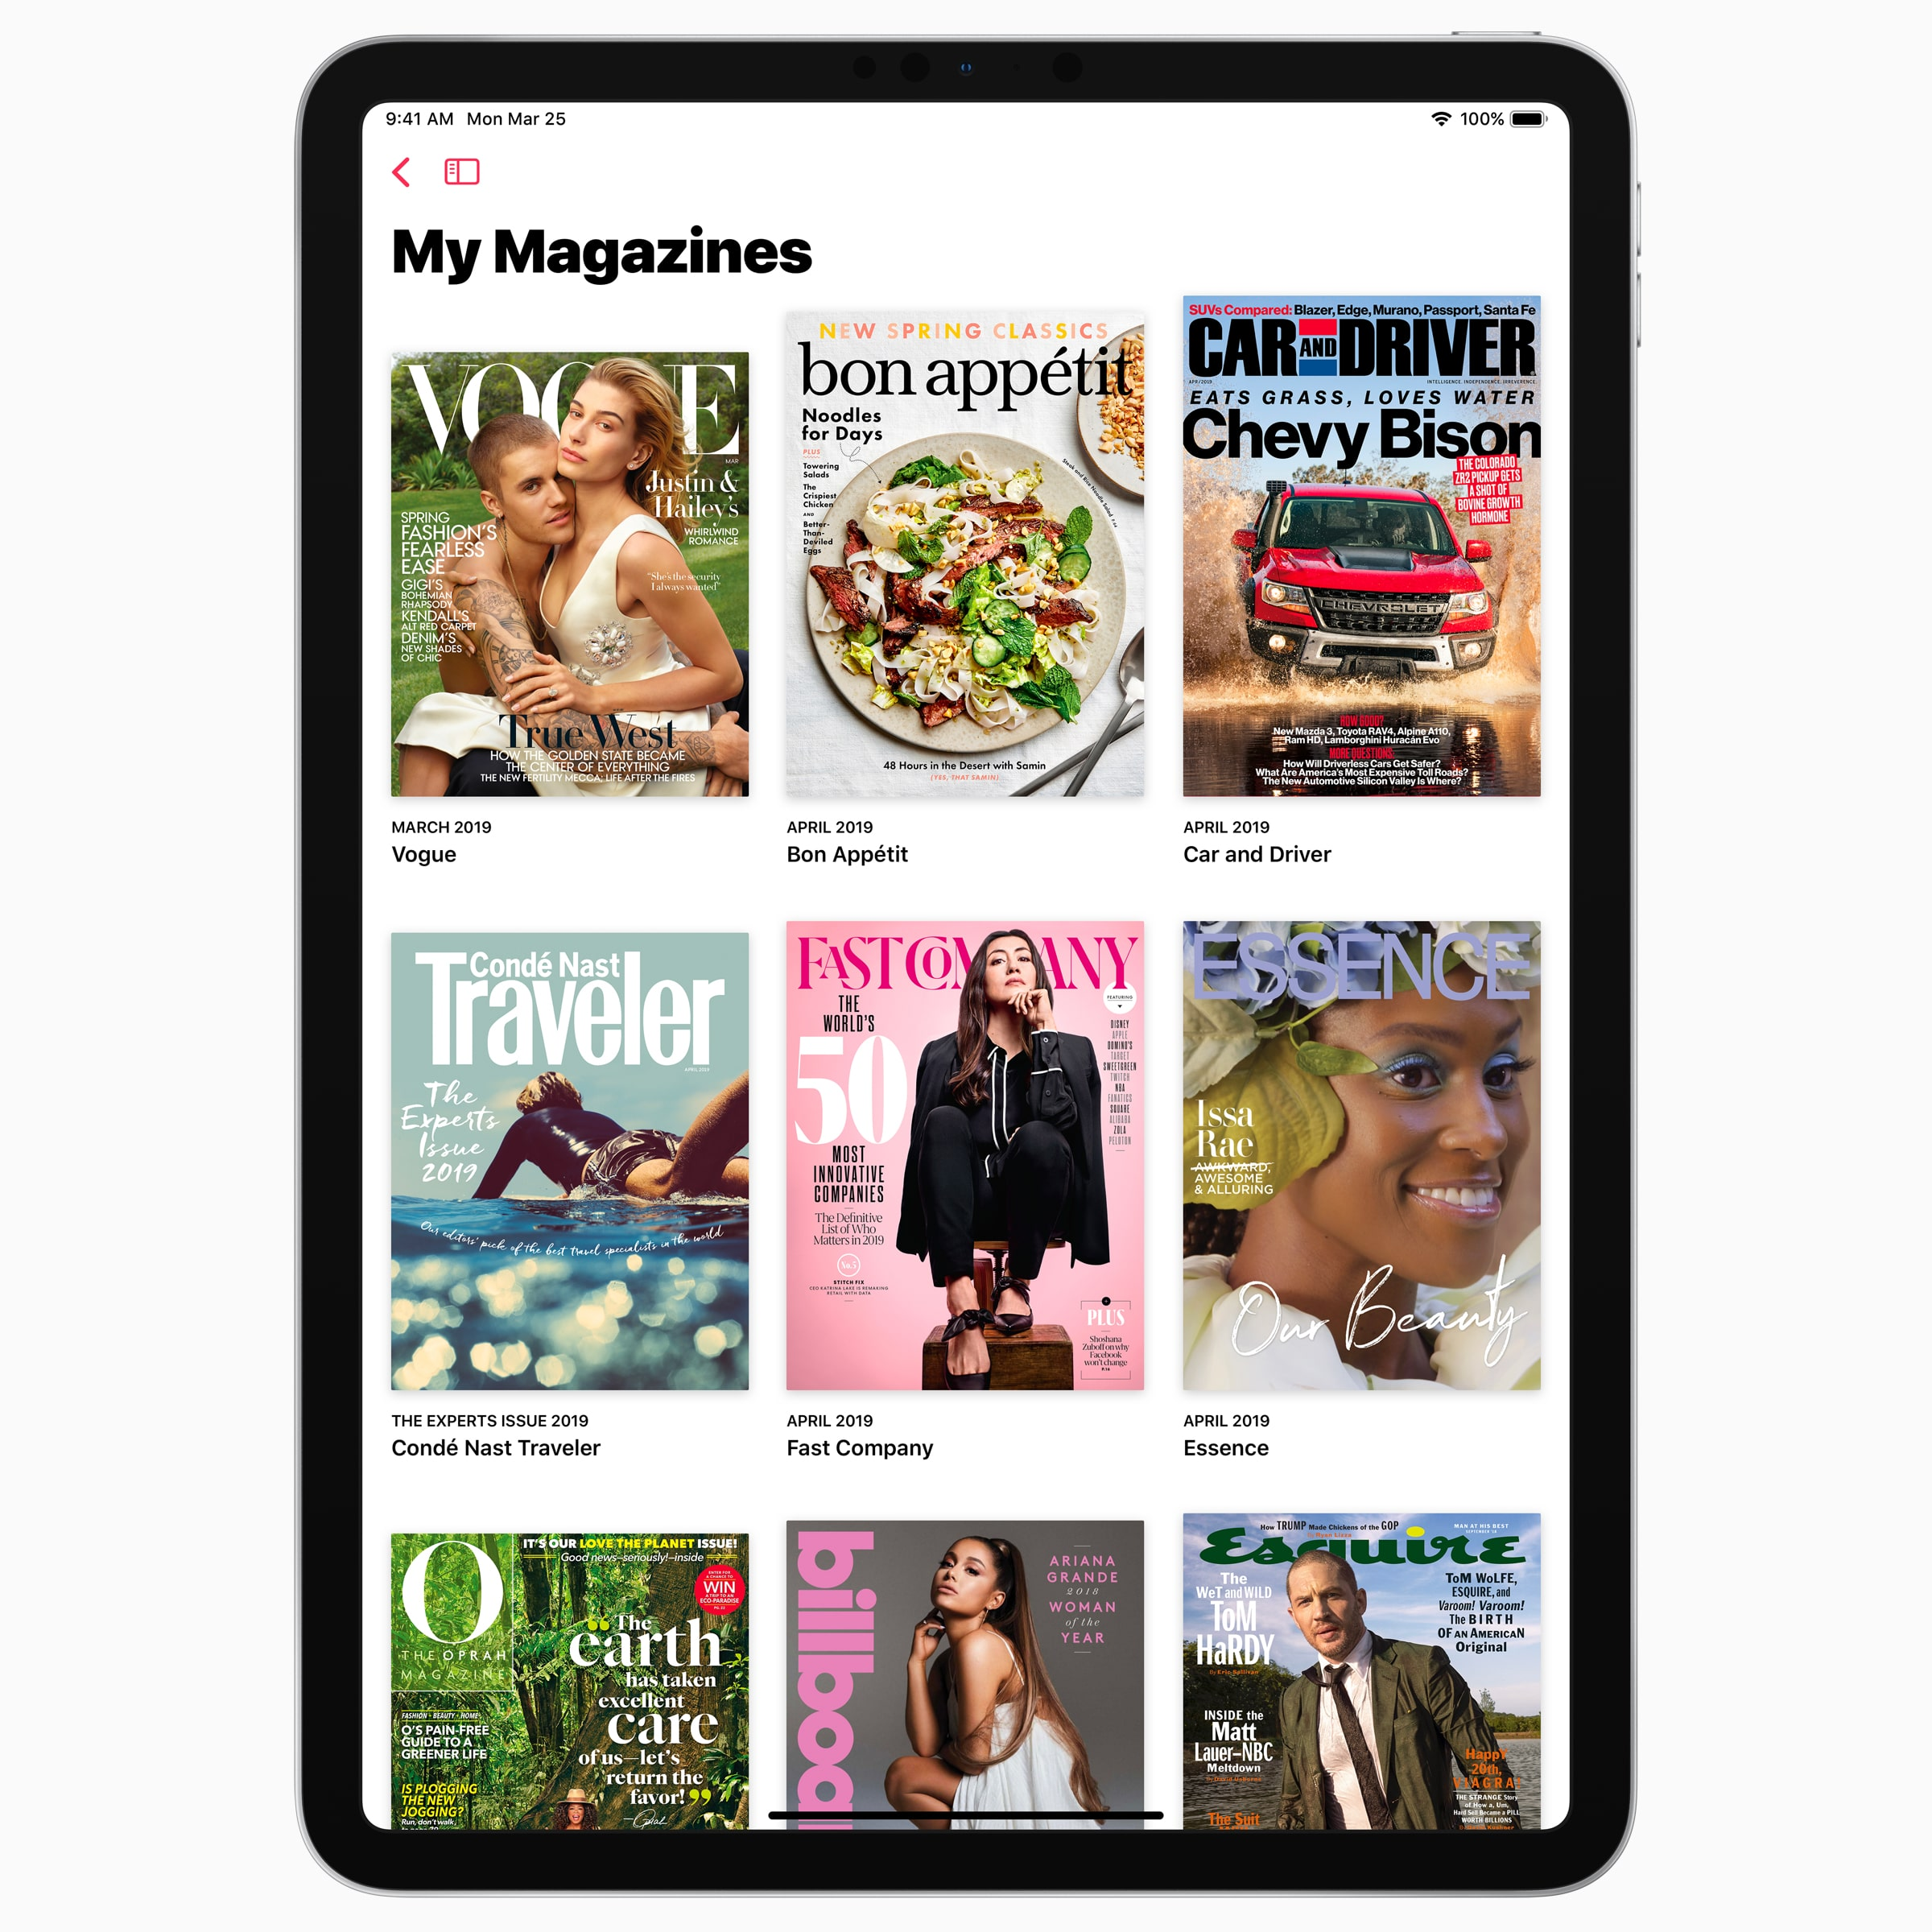 Apple-news-plus-magazines-ipad-screen-03252019